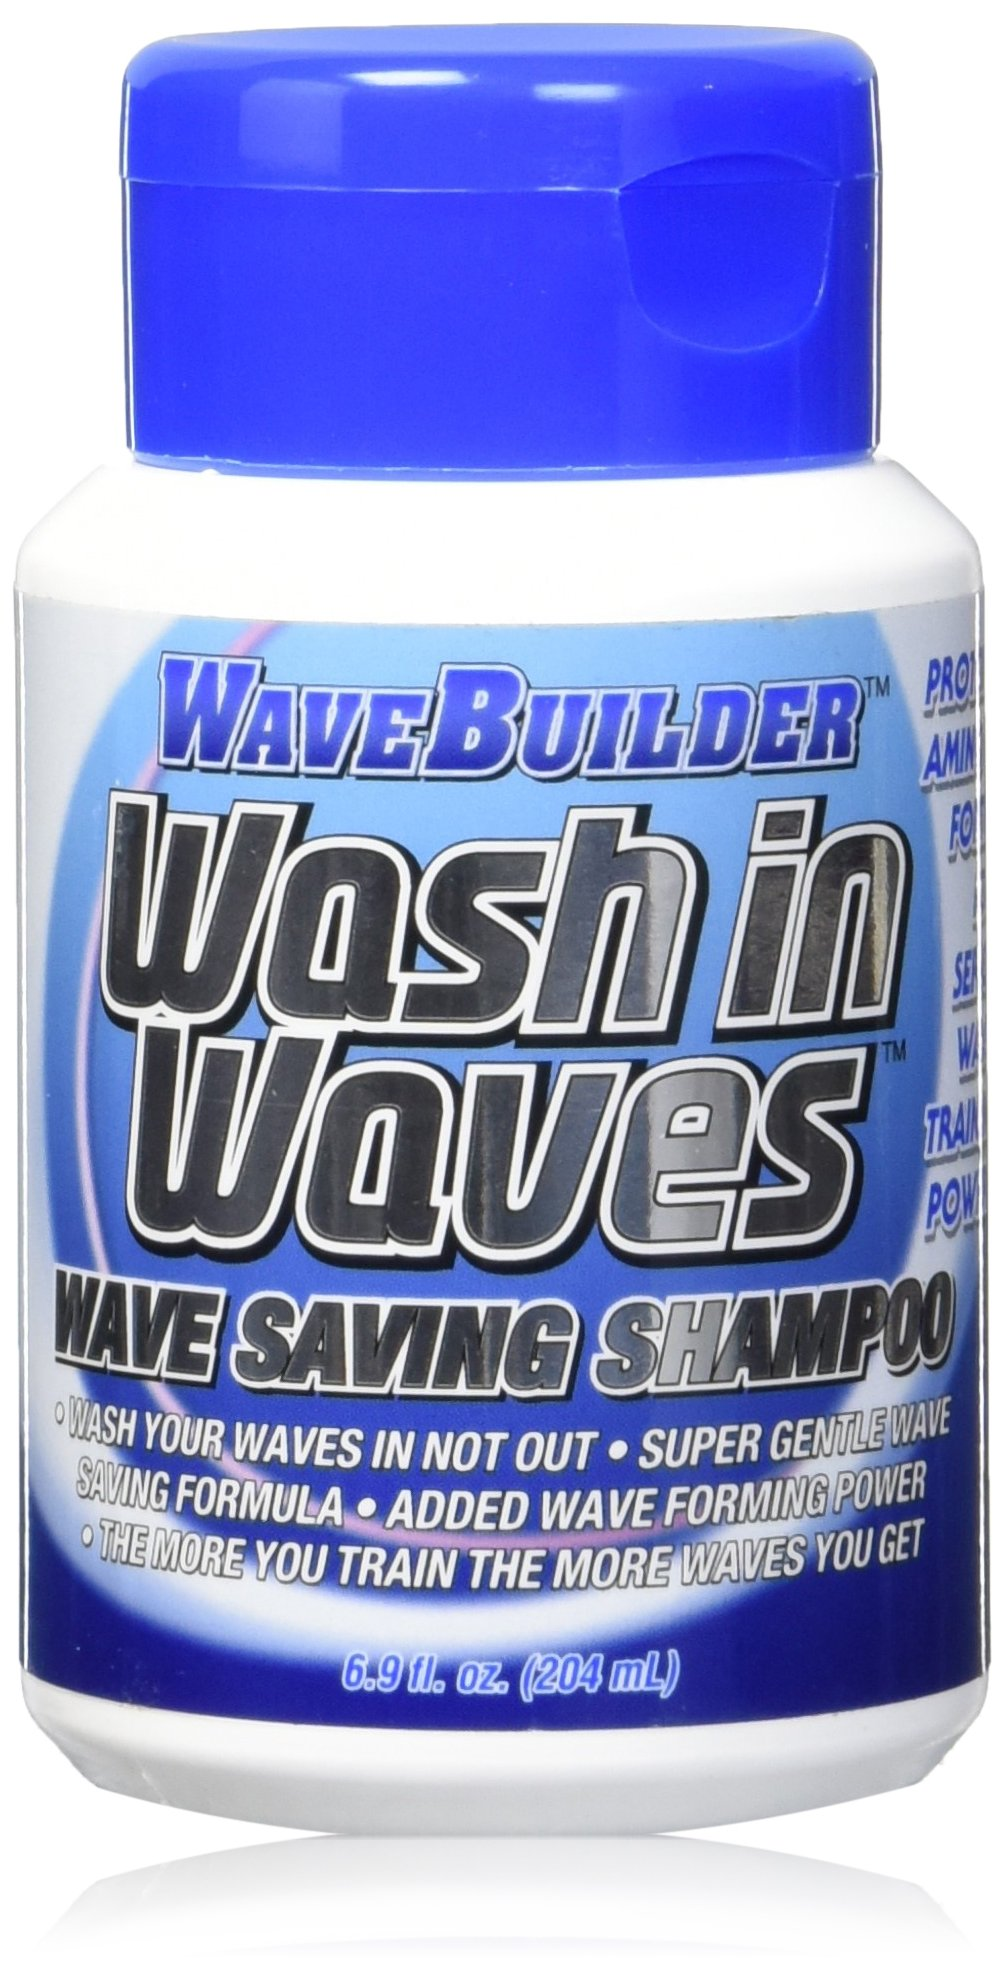 Wave Builder Wash In Waves Shampoo, 6.9 Ounce